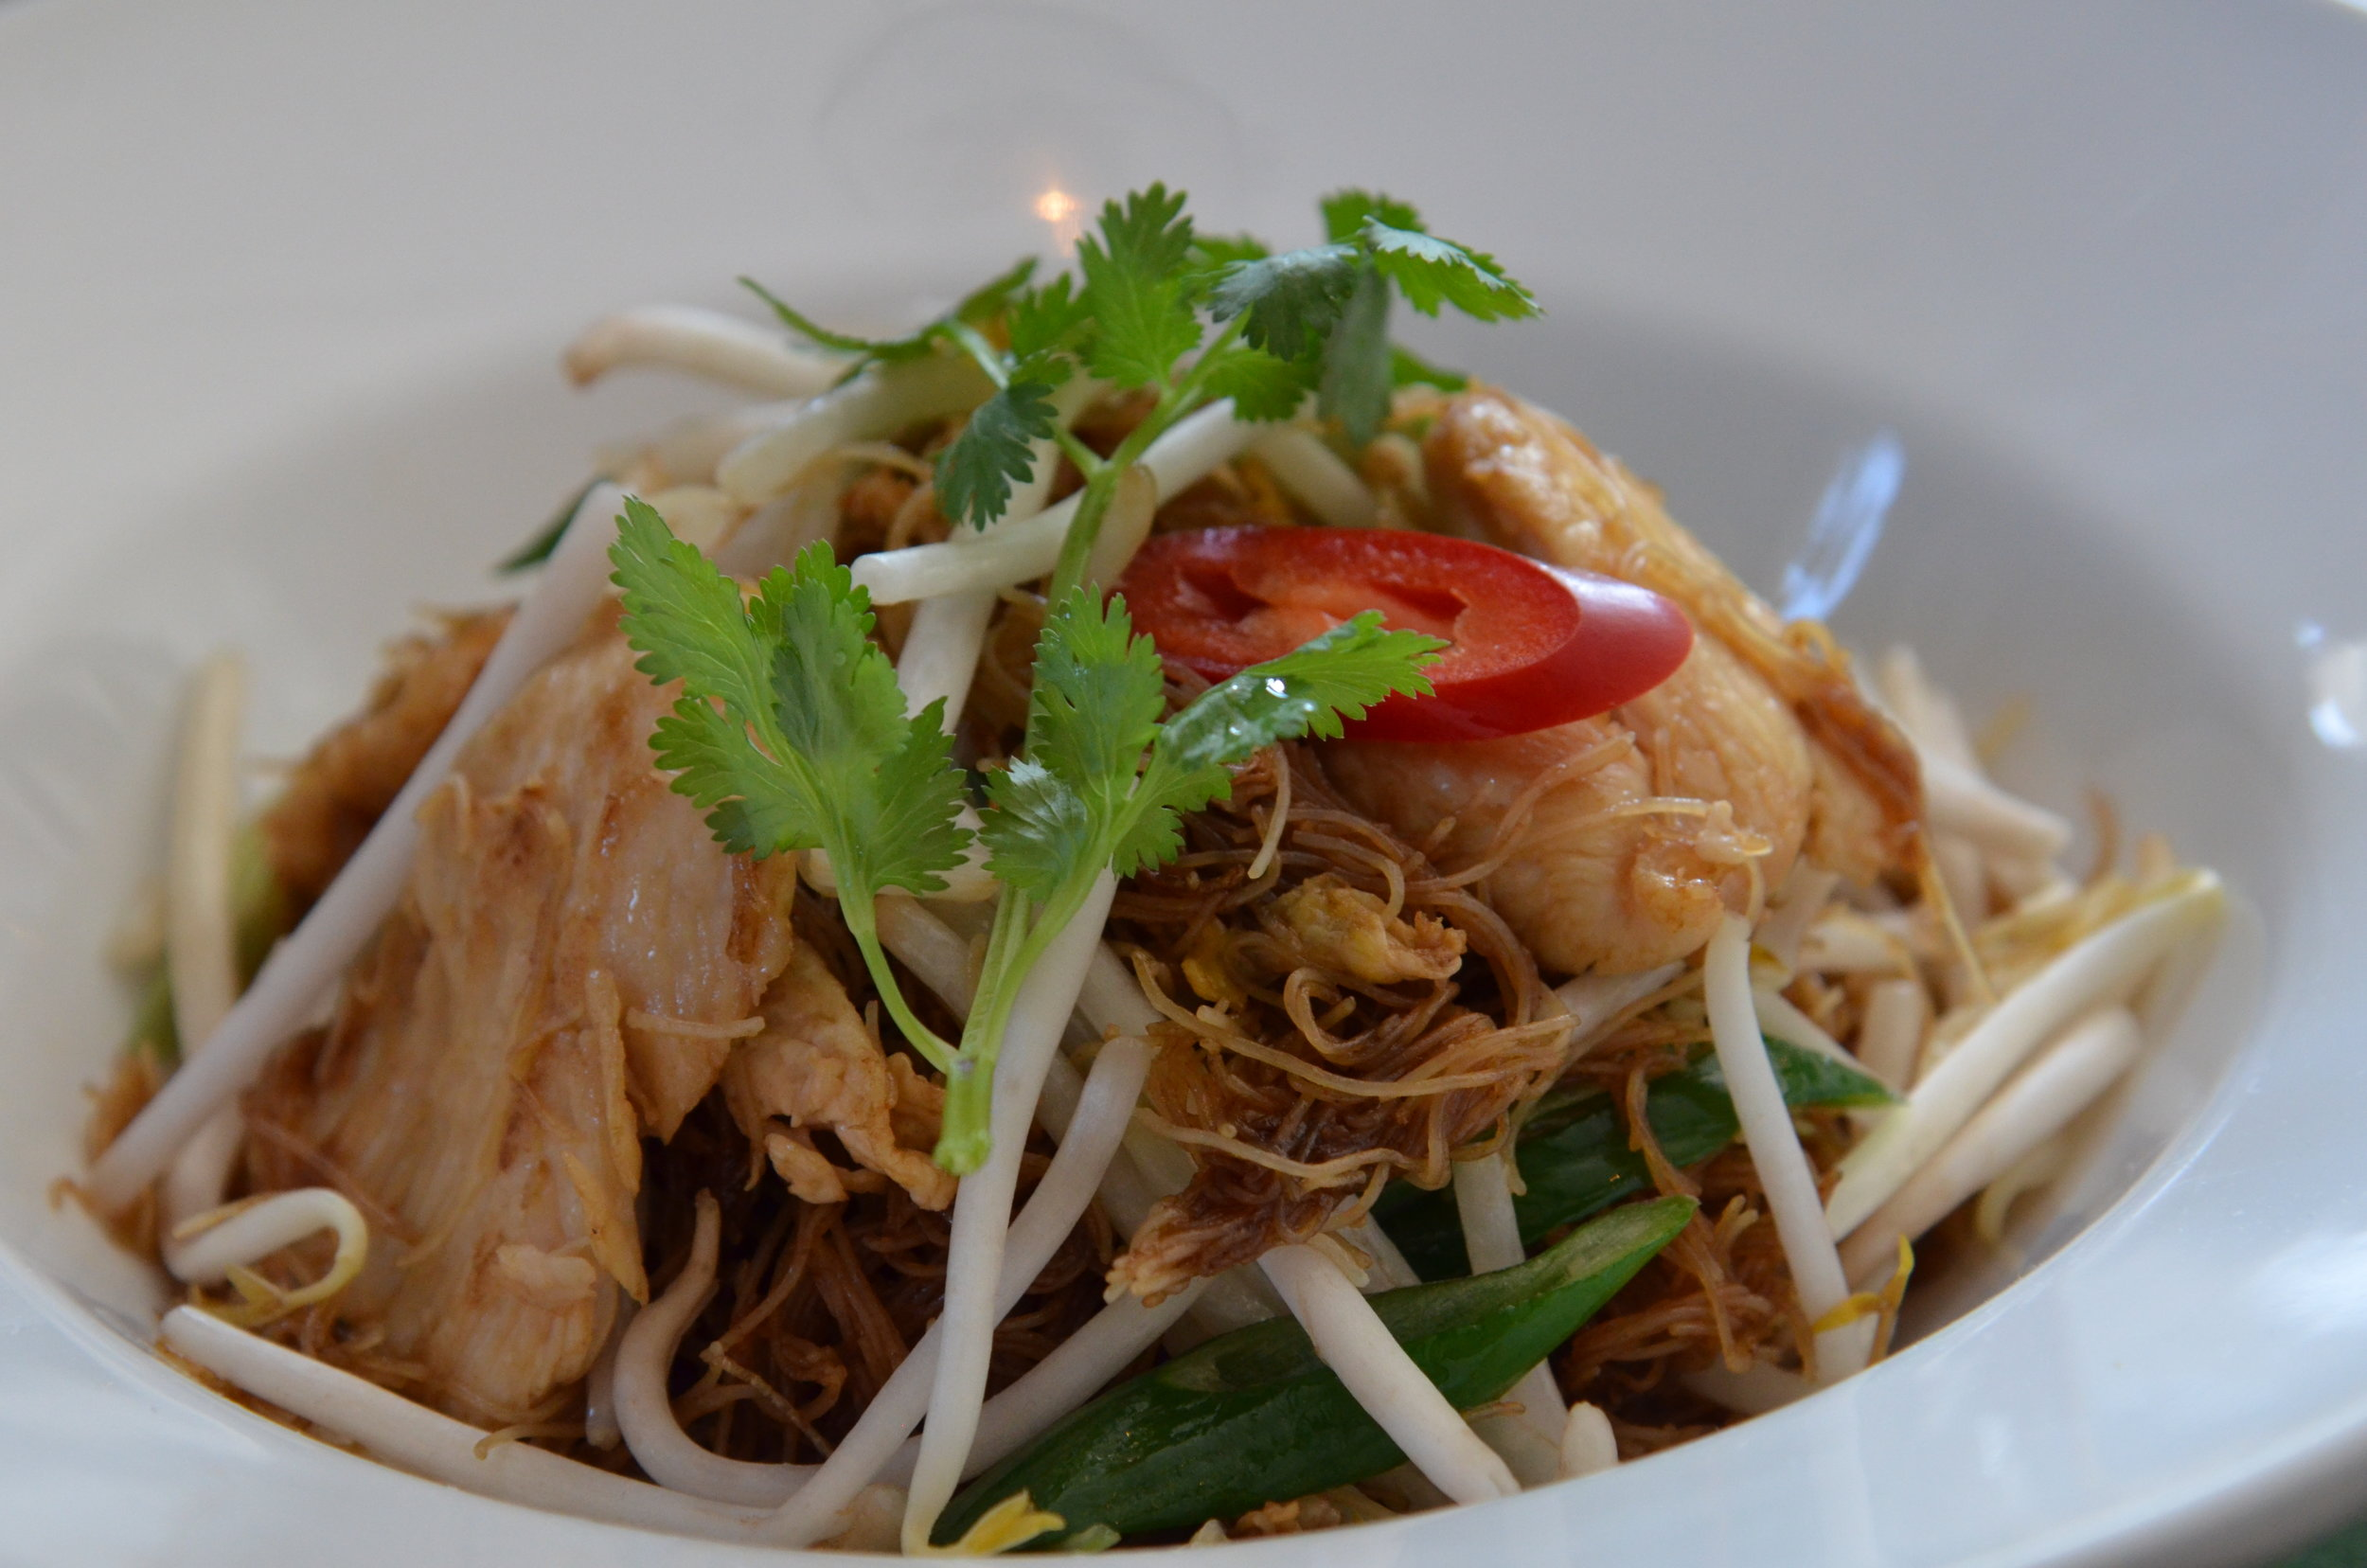 Pad Thungtaak  - Wok fried rice vermicelli with chicken,  pork or beancurd, egg, dark soy sauce and beansprouts